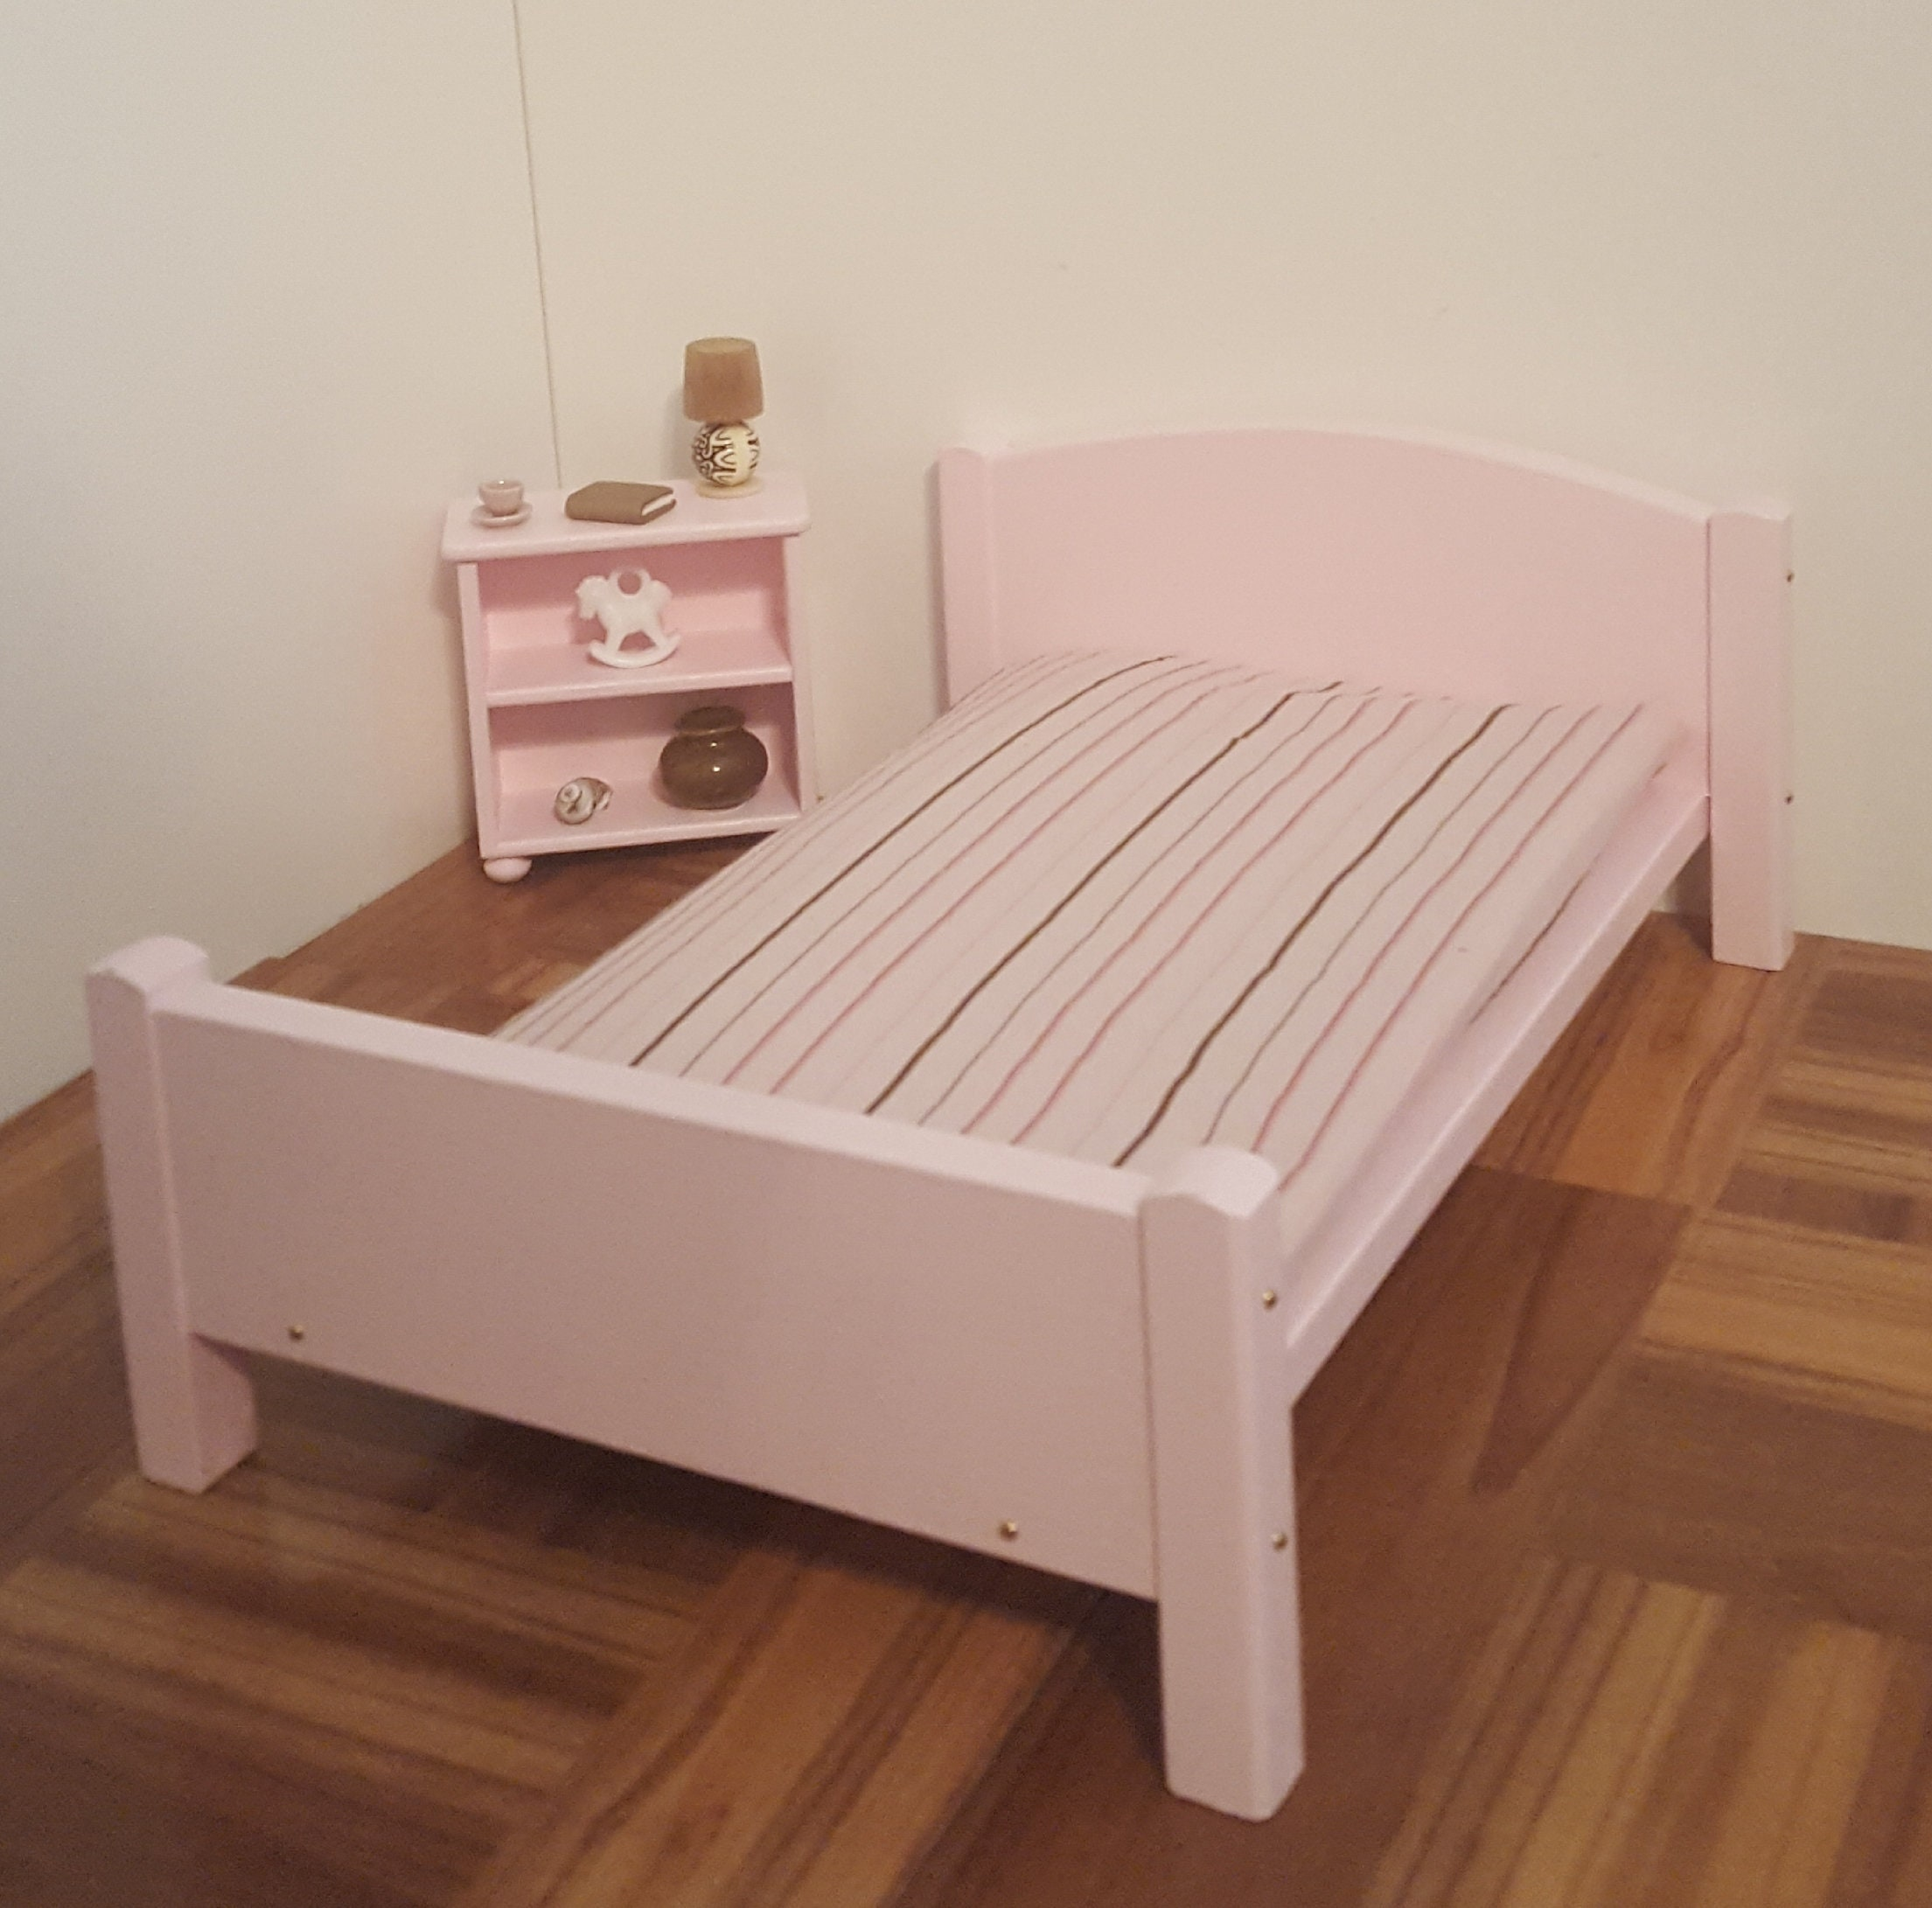 rose lit poup e queen size avec matelas de mousse de 1 6 scale etsy. Black Bedroom Furniture Sets. Home Design Ideas